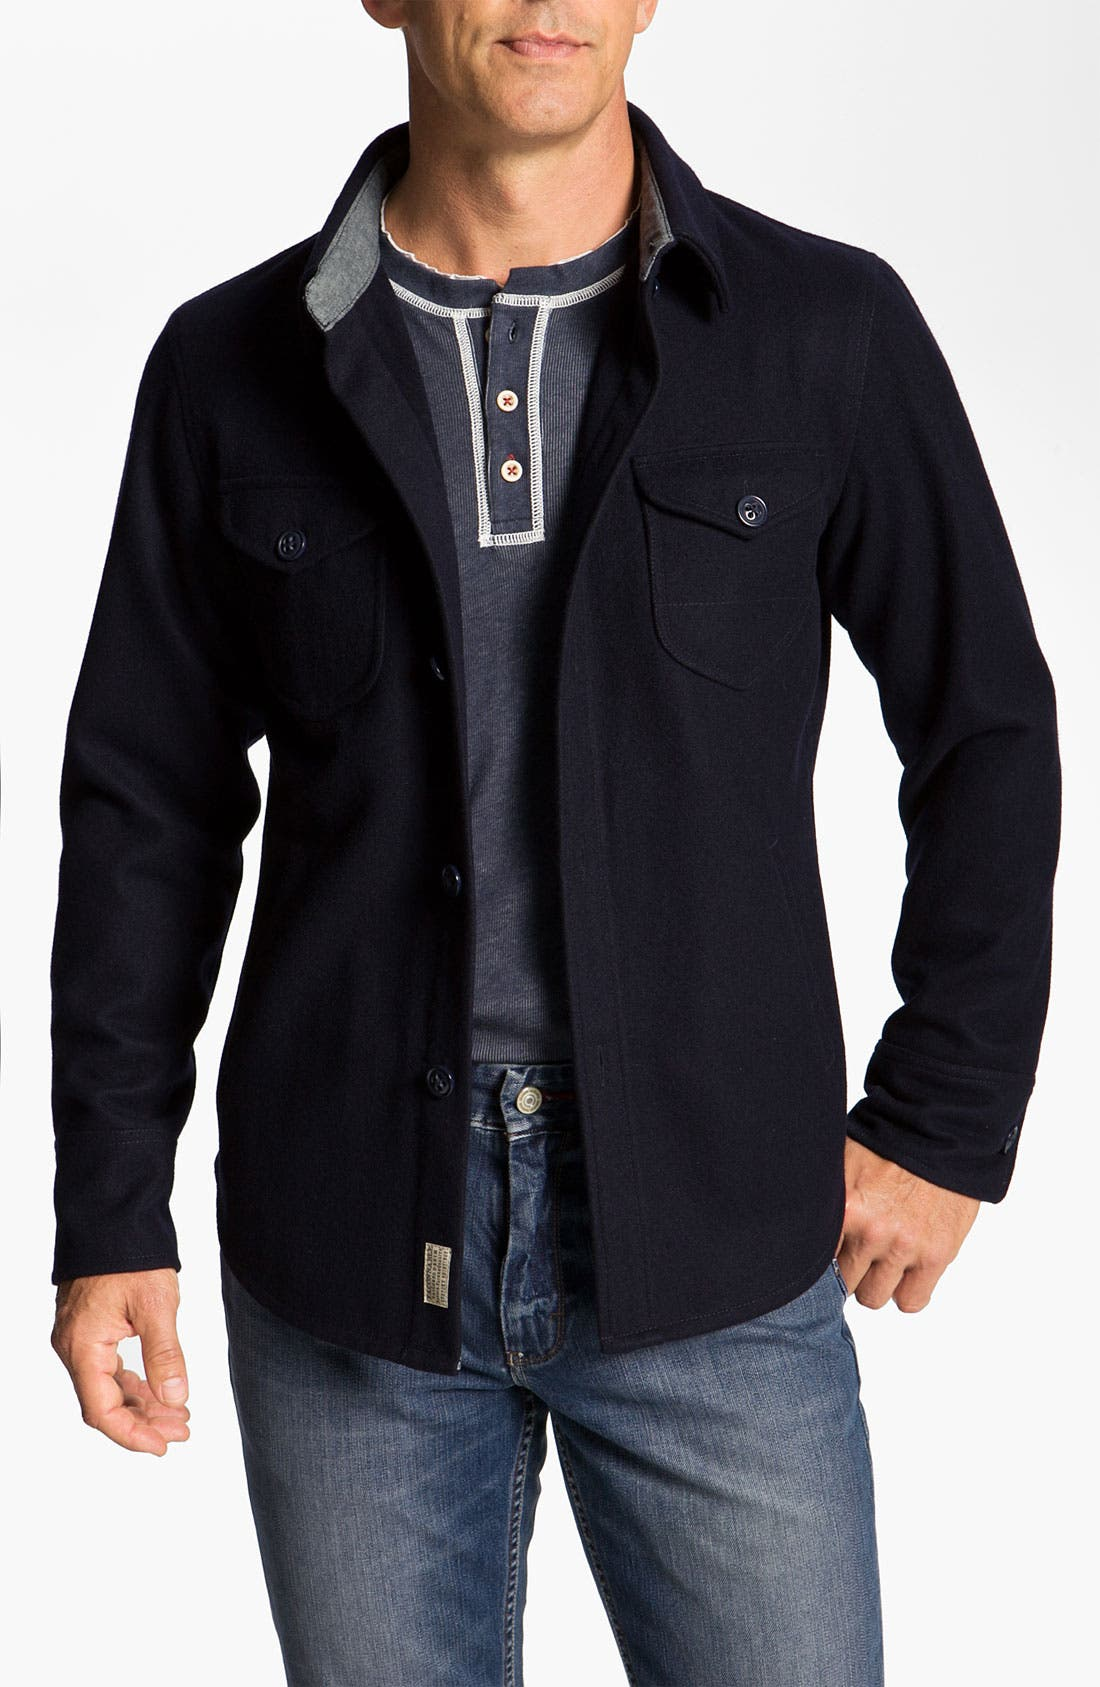 Alternate Image 1 Selected - Façonnable 'CPO' Wool Blend Shirt Jacket